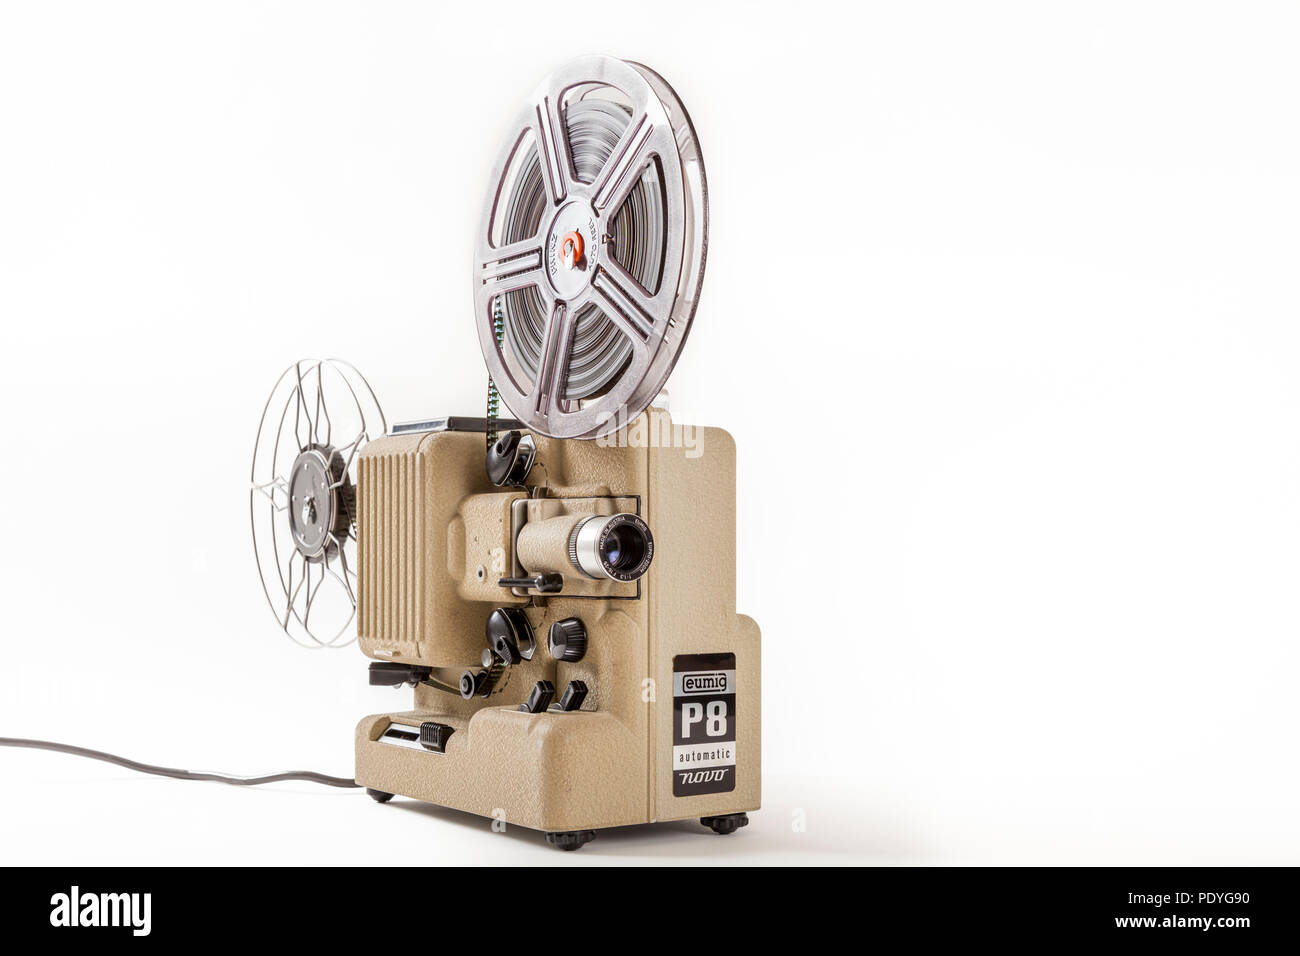 Old Film Projector Stock Photos & Old Film Projector Stock